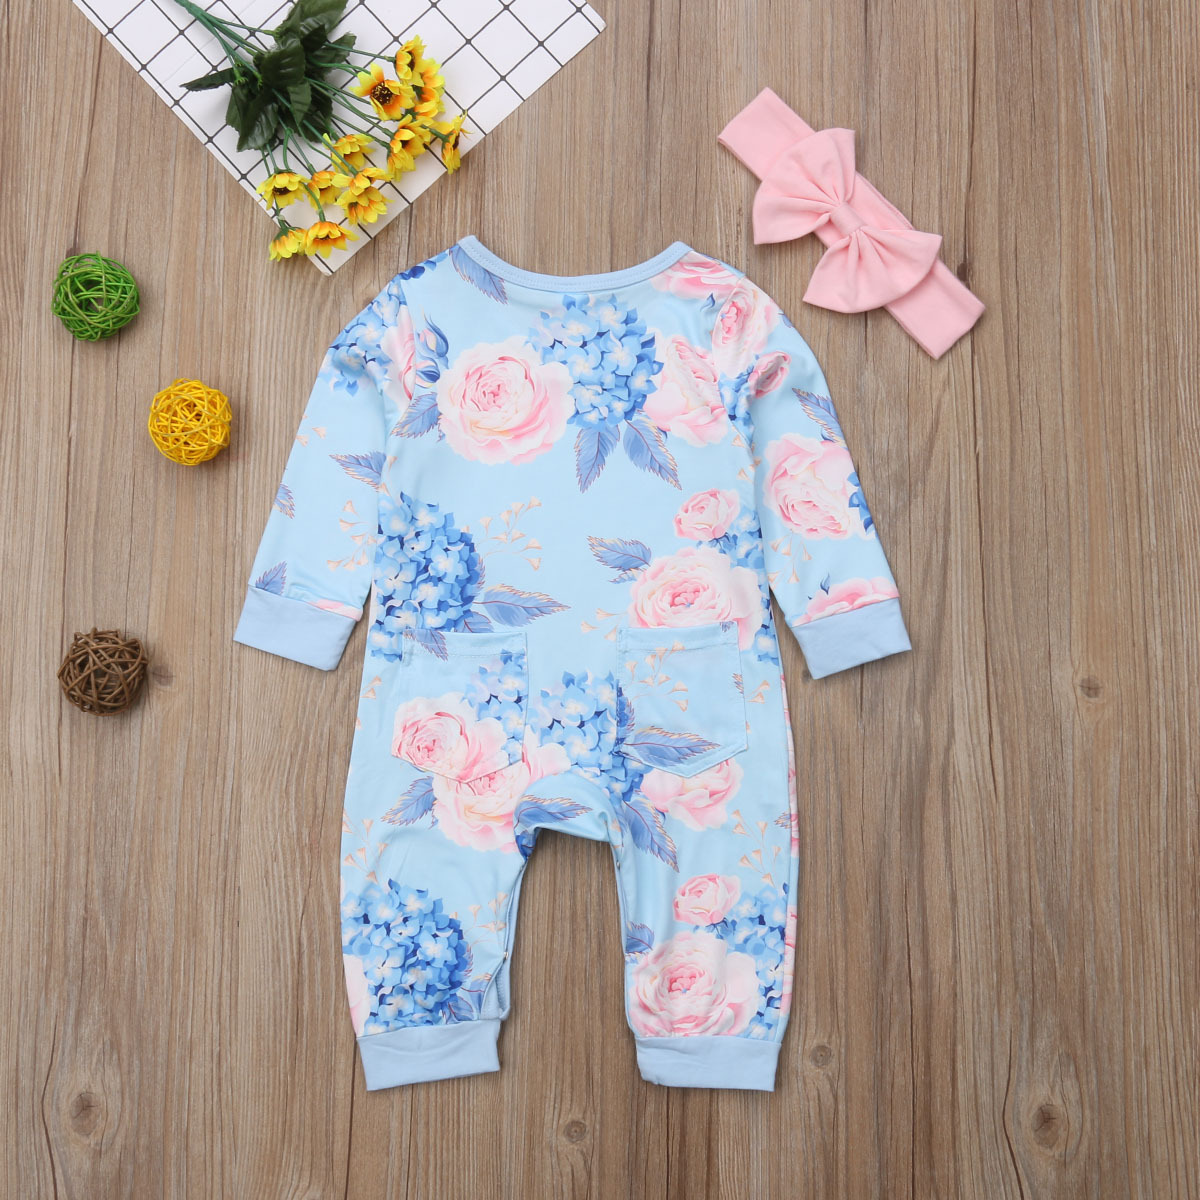 Infant Baby Girls Rompers Sleeveless Cotton Jumpsuit,Lipstick in The Blossoms Outfit Summer Pajamas